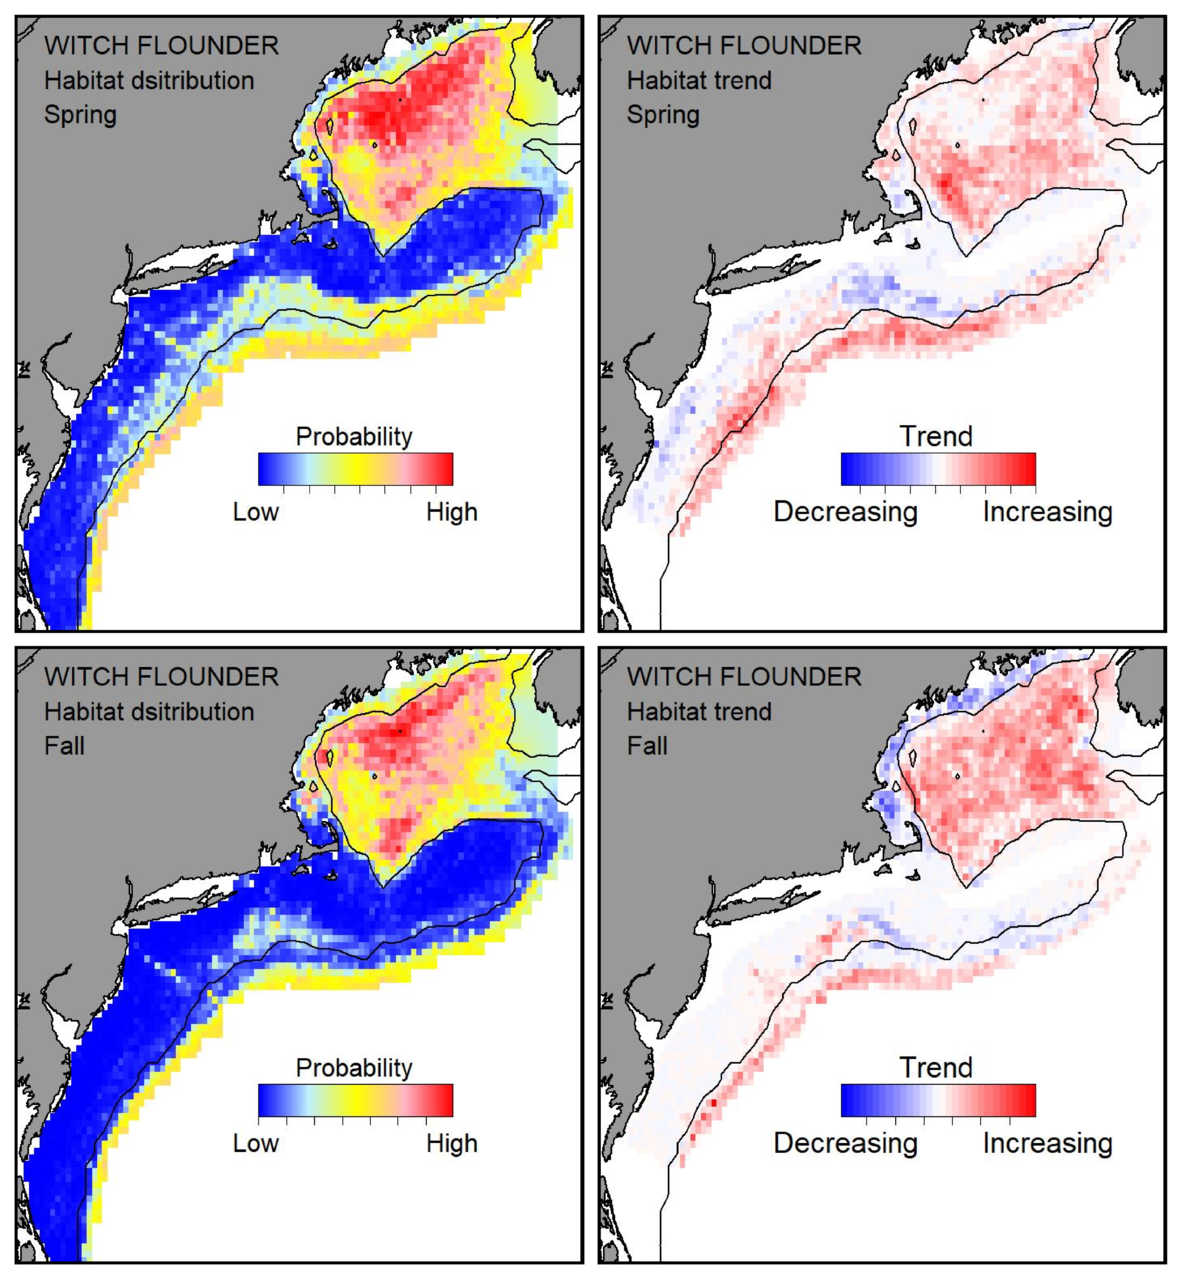 Probable habitat distribution for witch flounder showing the highest concentration and increasing trend in the Gulf of Maine during the spring. Bottom row: Probable habitat distribution for witch flounder showing the highest concentration and increasing trend in the Gulf of Maine during the fall.